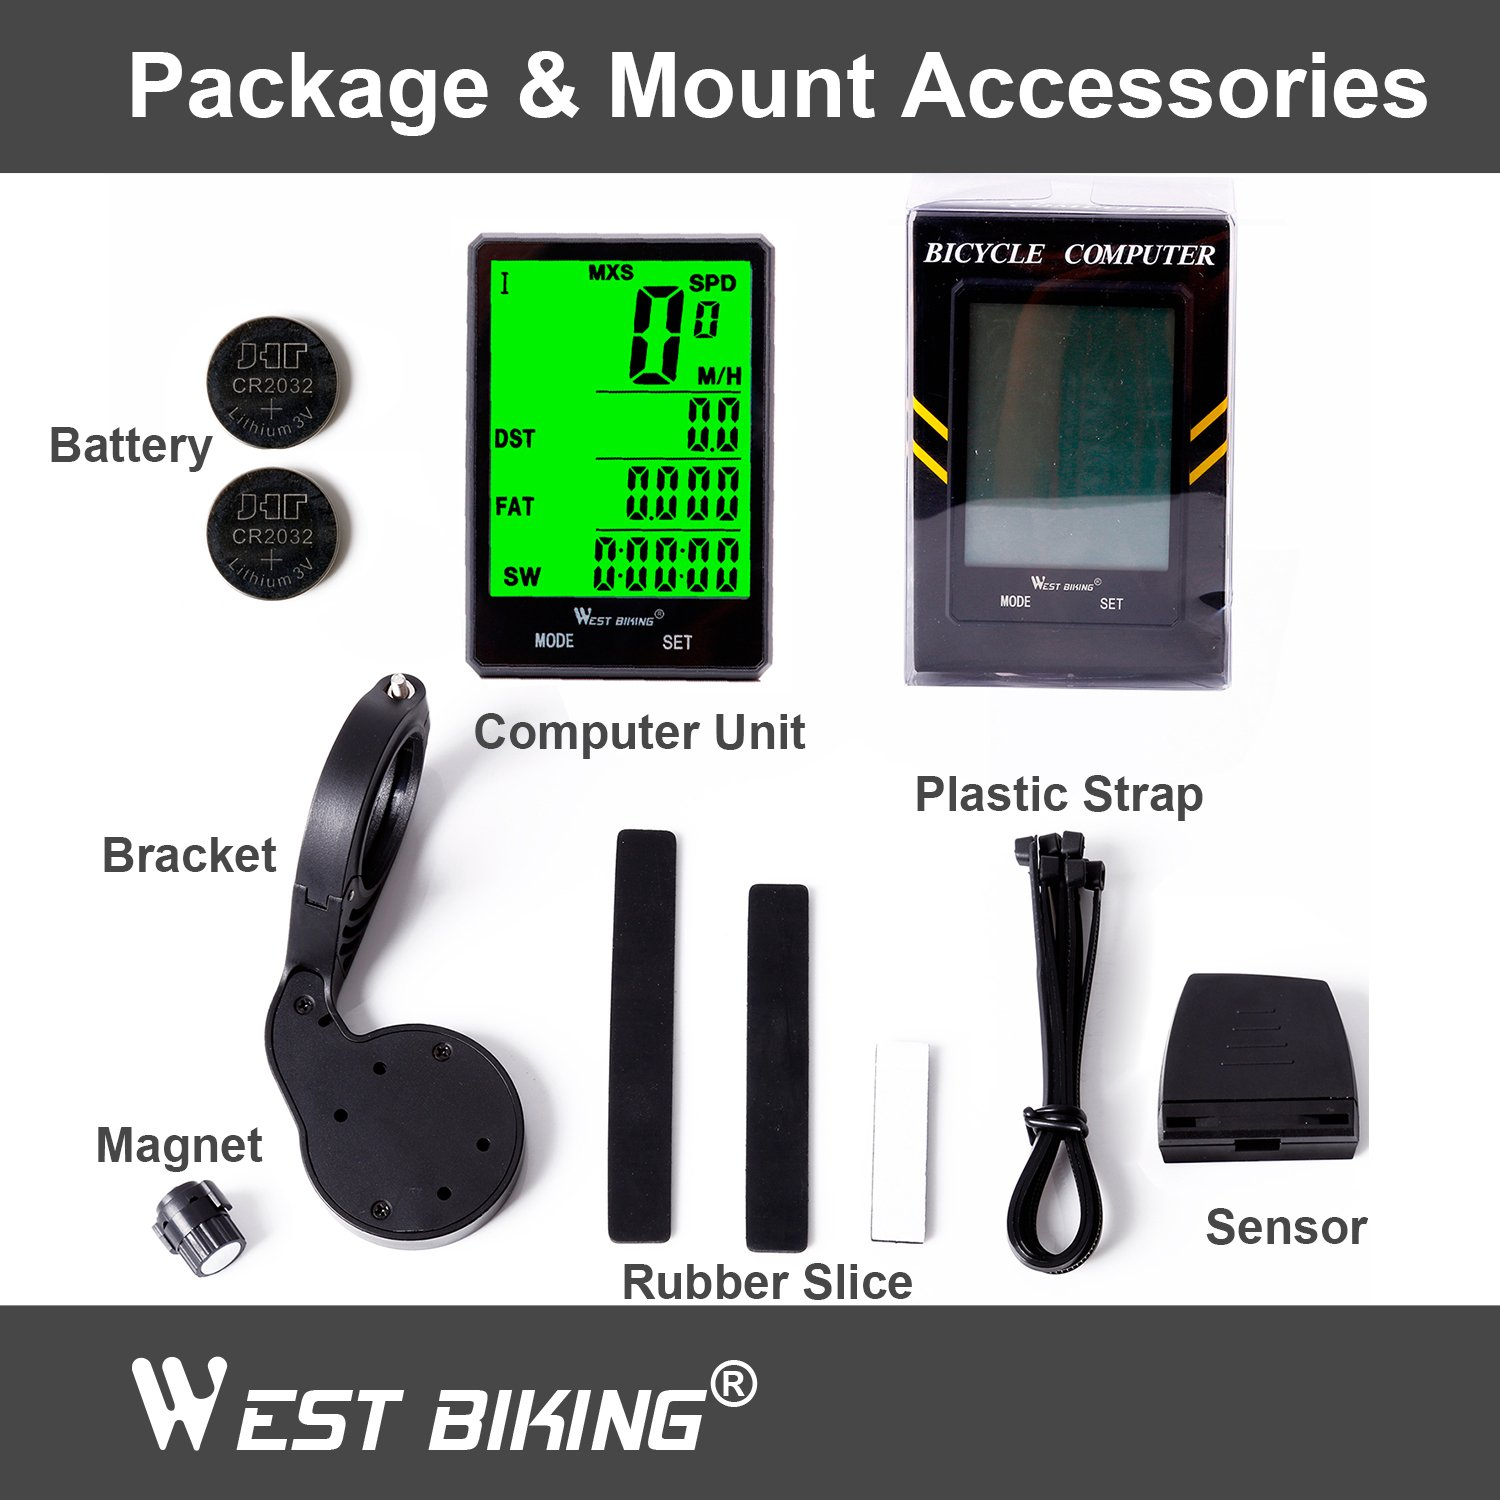 Amazon.com : Bicycle Computer,Bike Odometer Riding Speedometer, Large Screen, Wide Viewing Angle, Waterproof Automatic Wake-up, LCD Electrical ...